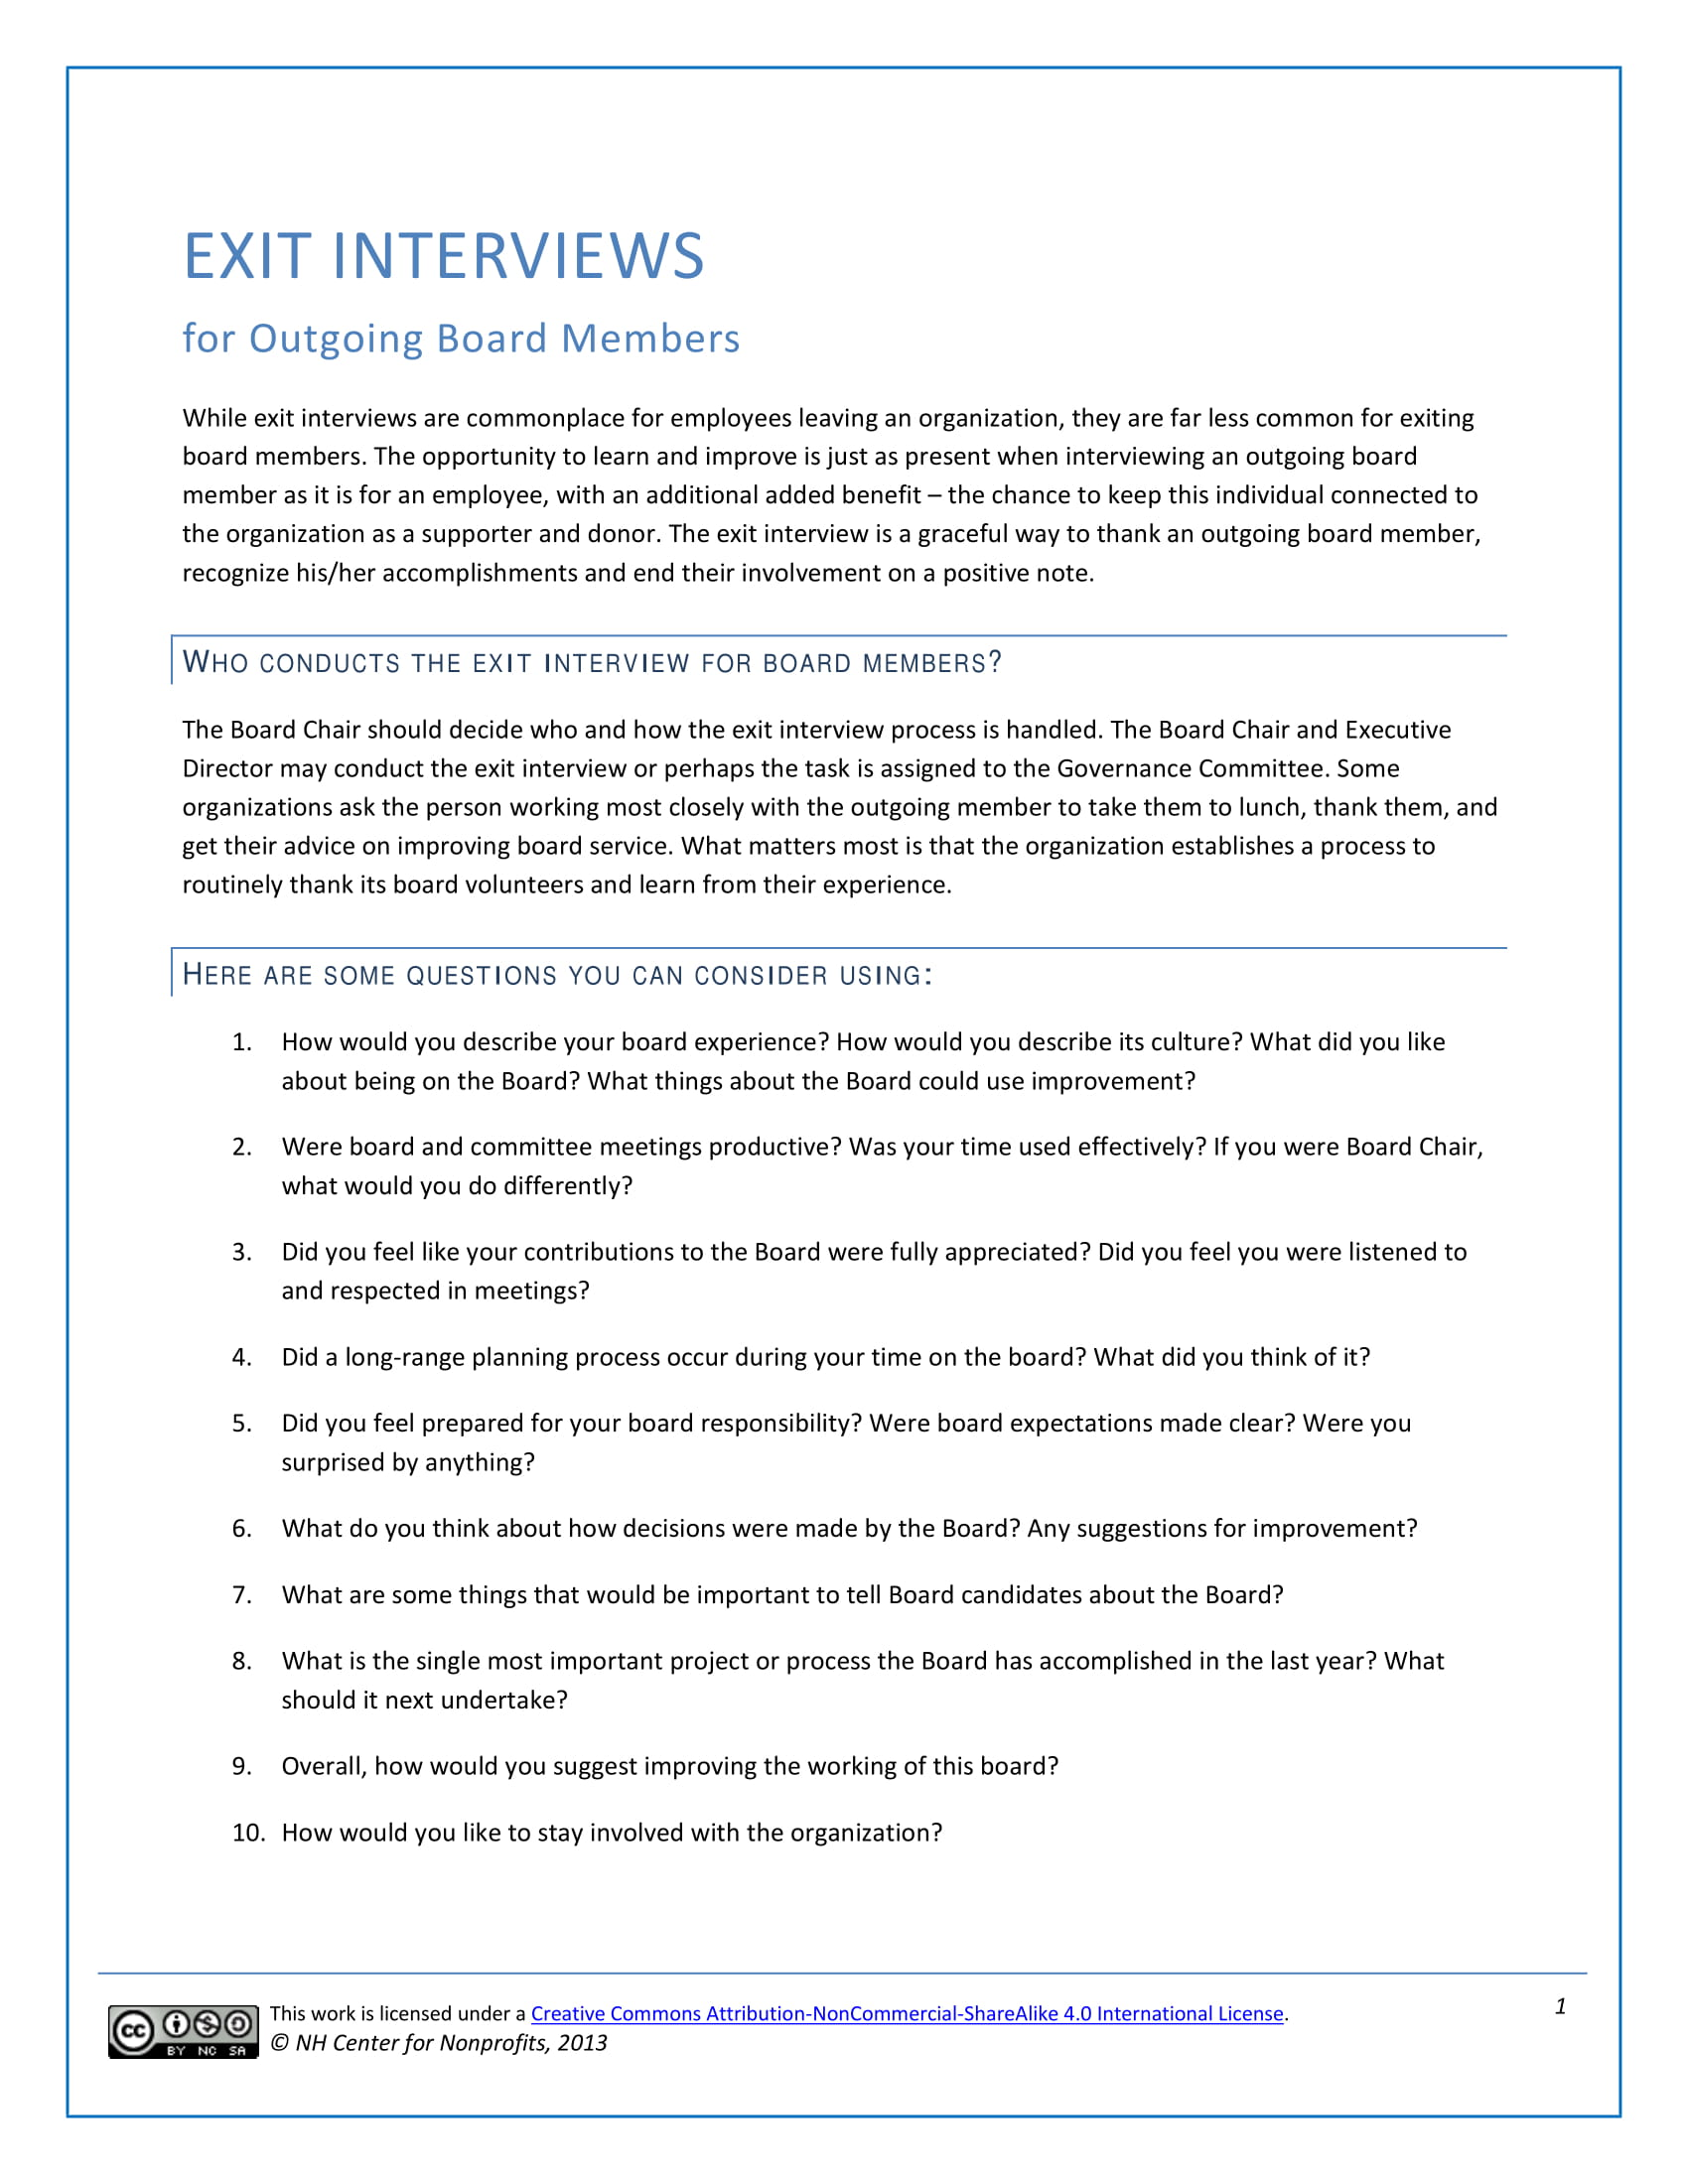 outgoing members exit interview form example